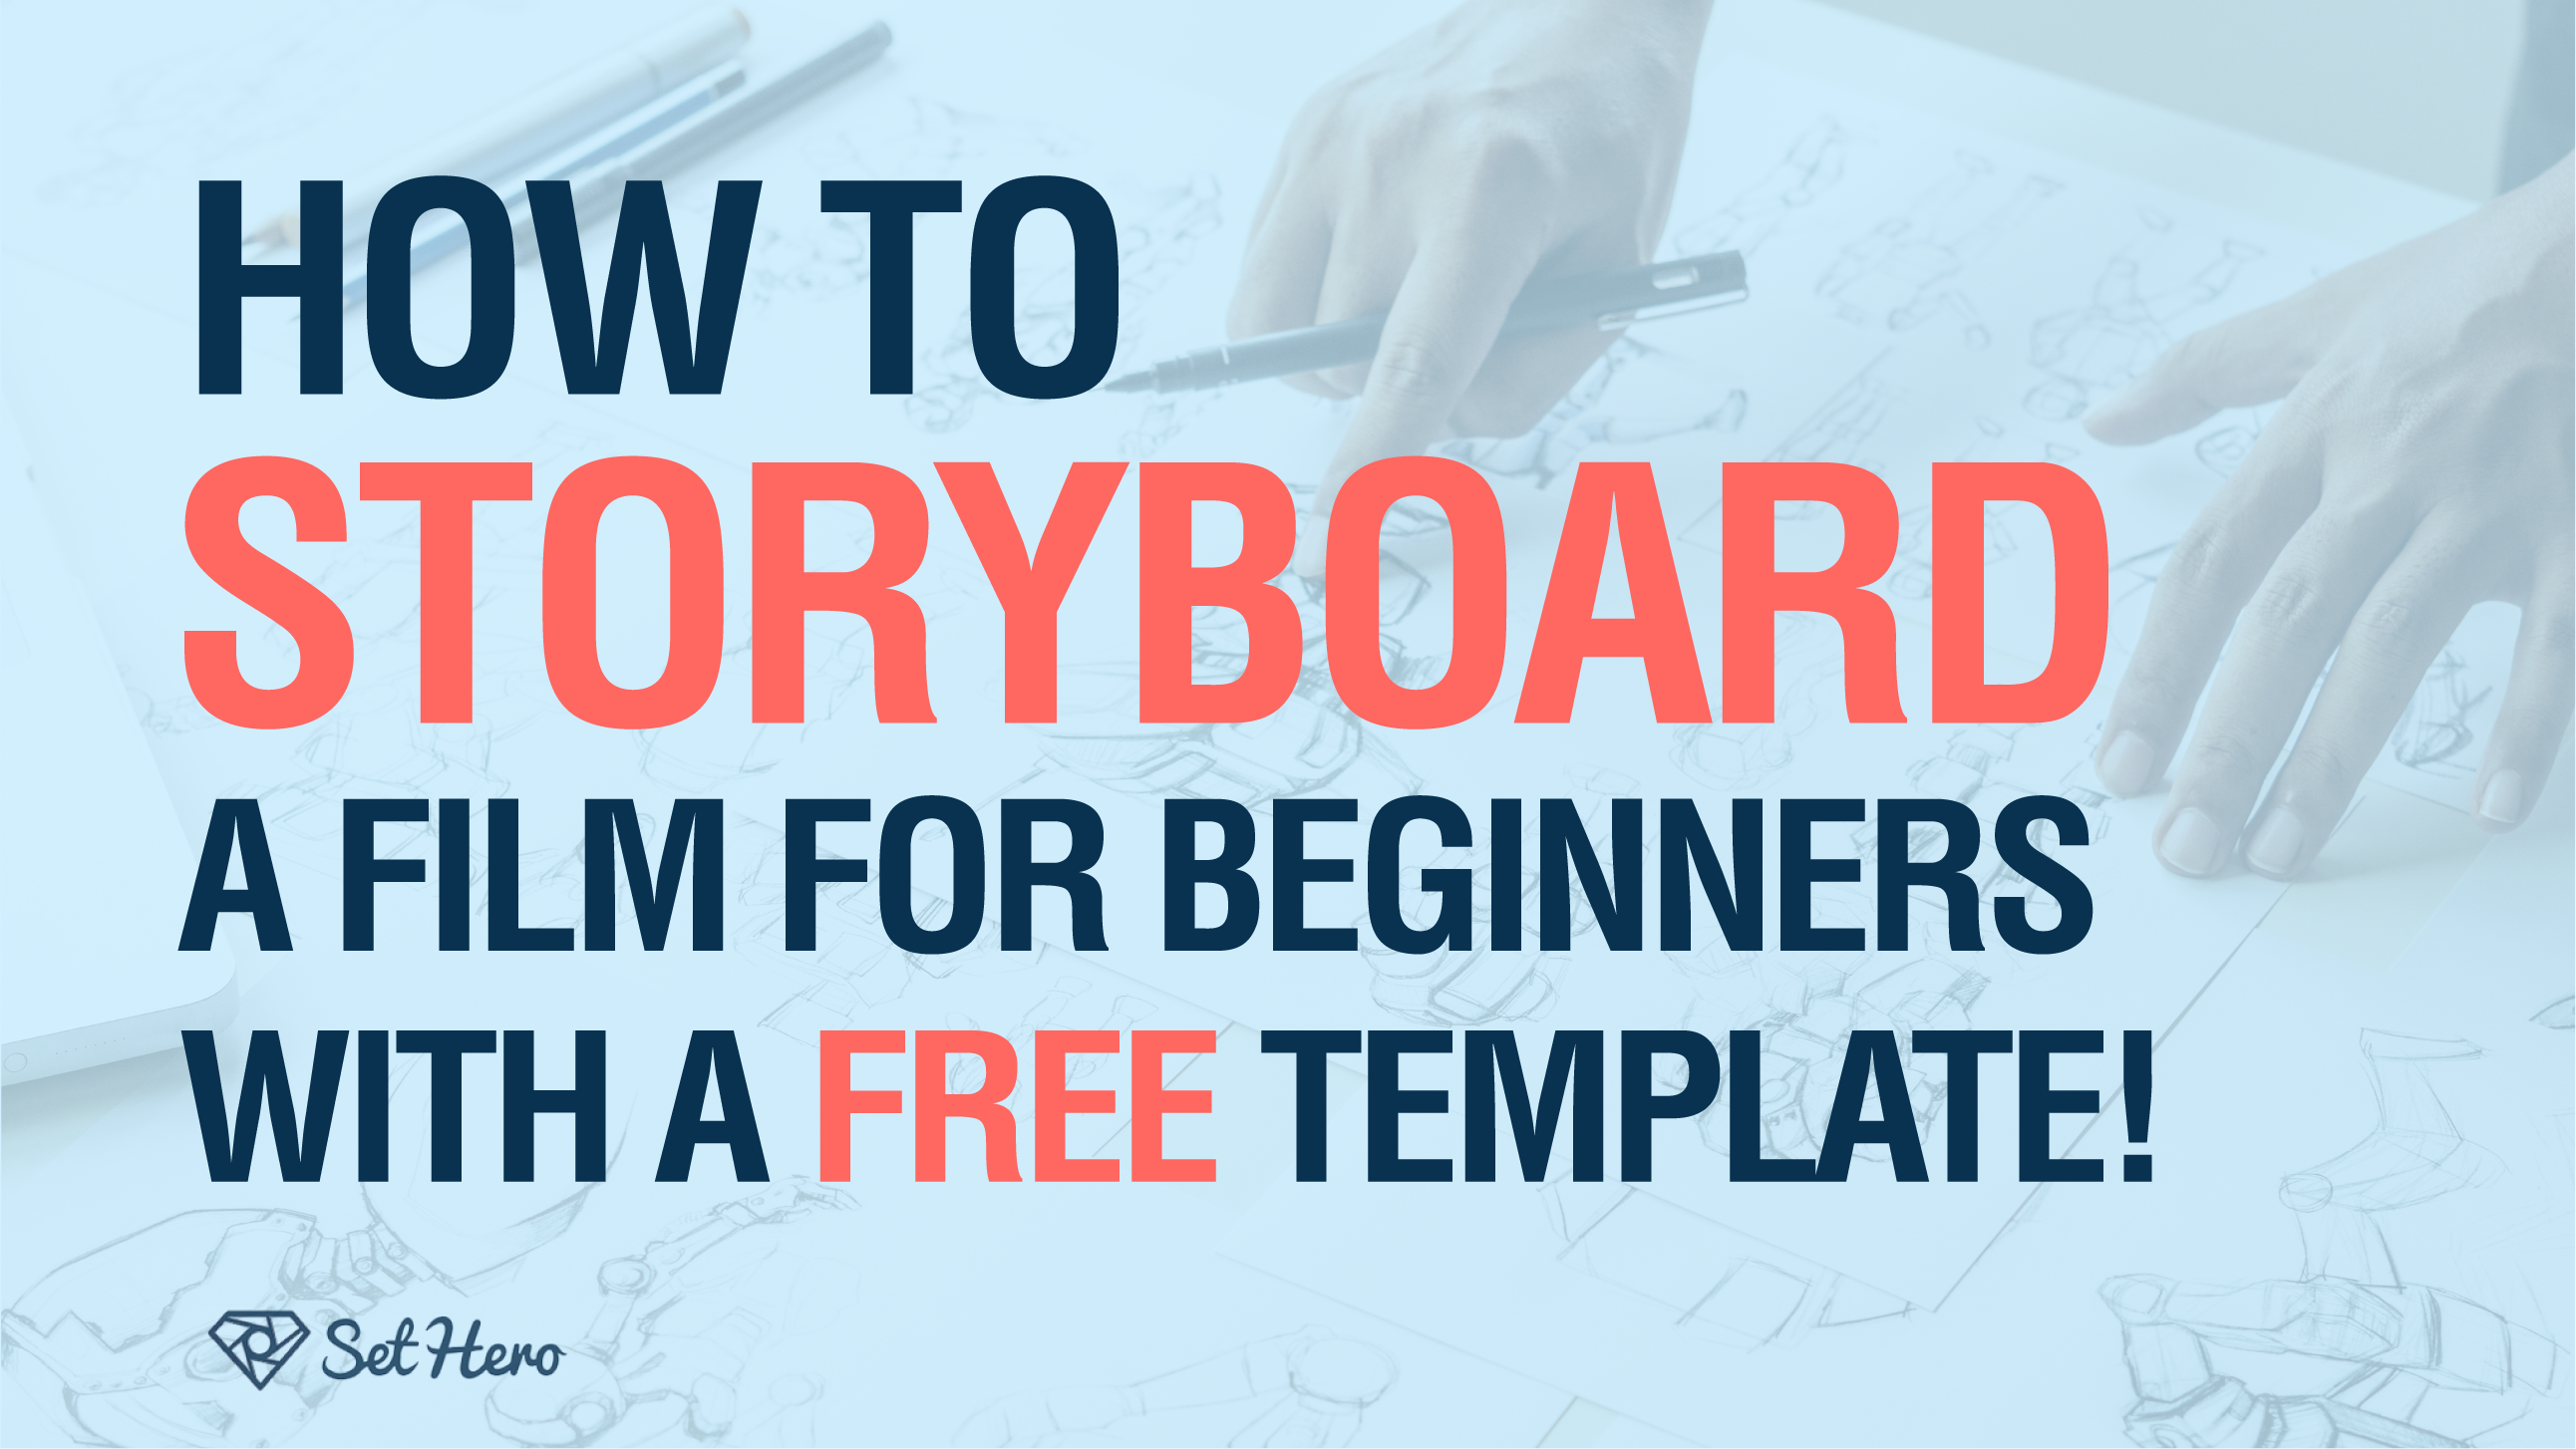 How to Storyboard a film for beginners_1